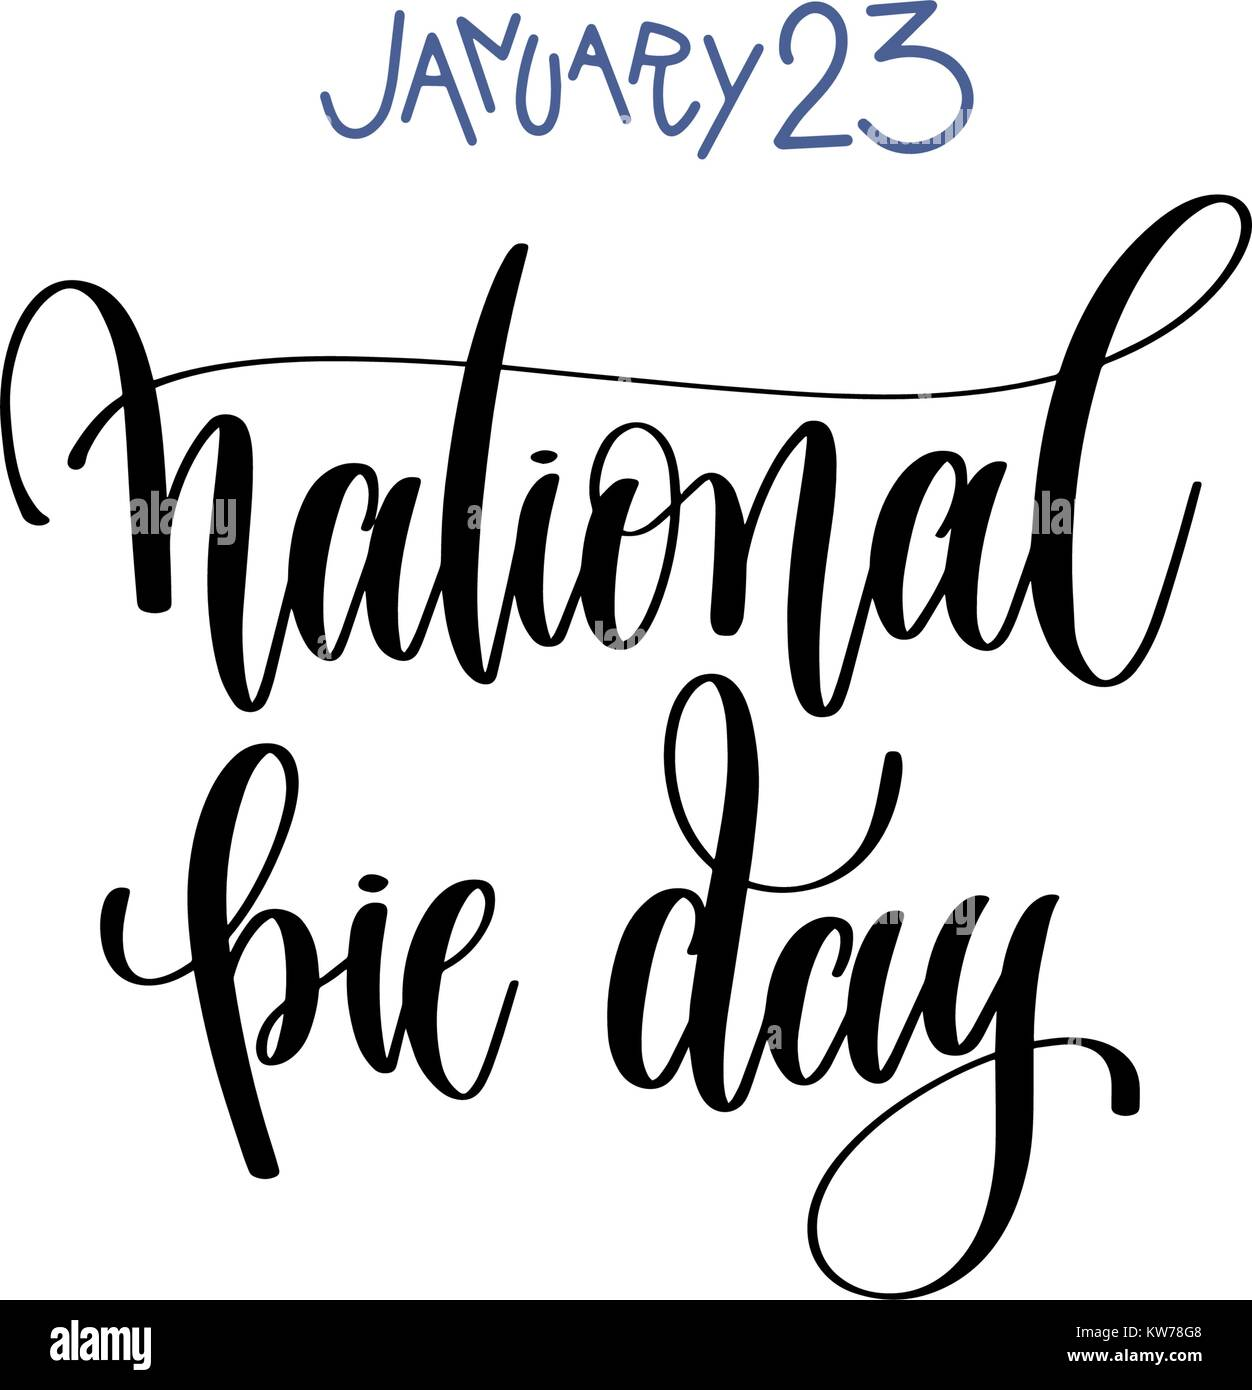 january 23 - national pie day - hand lettering inscription - Stock Vector